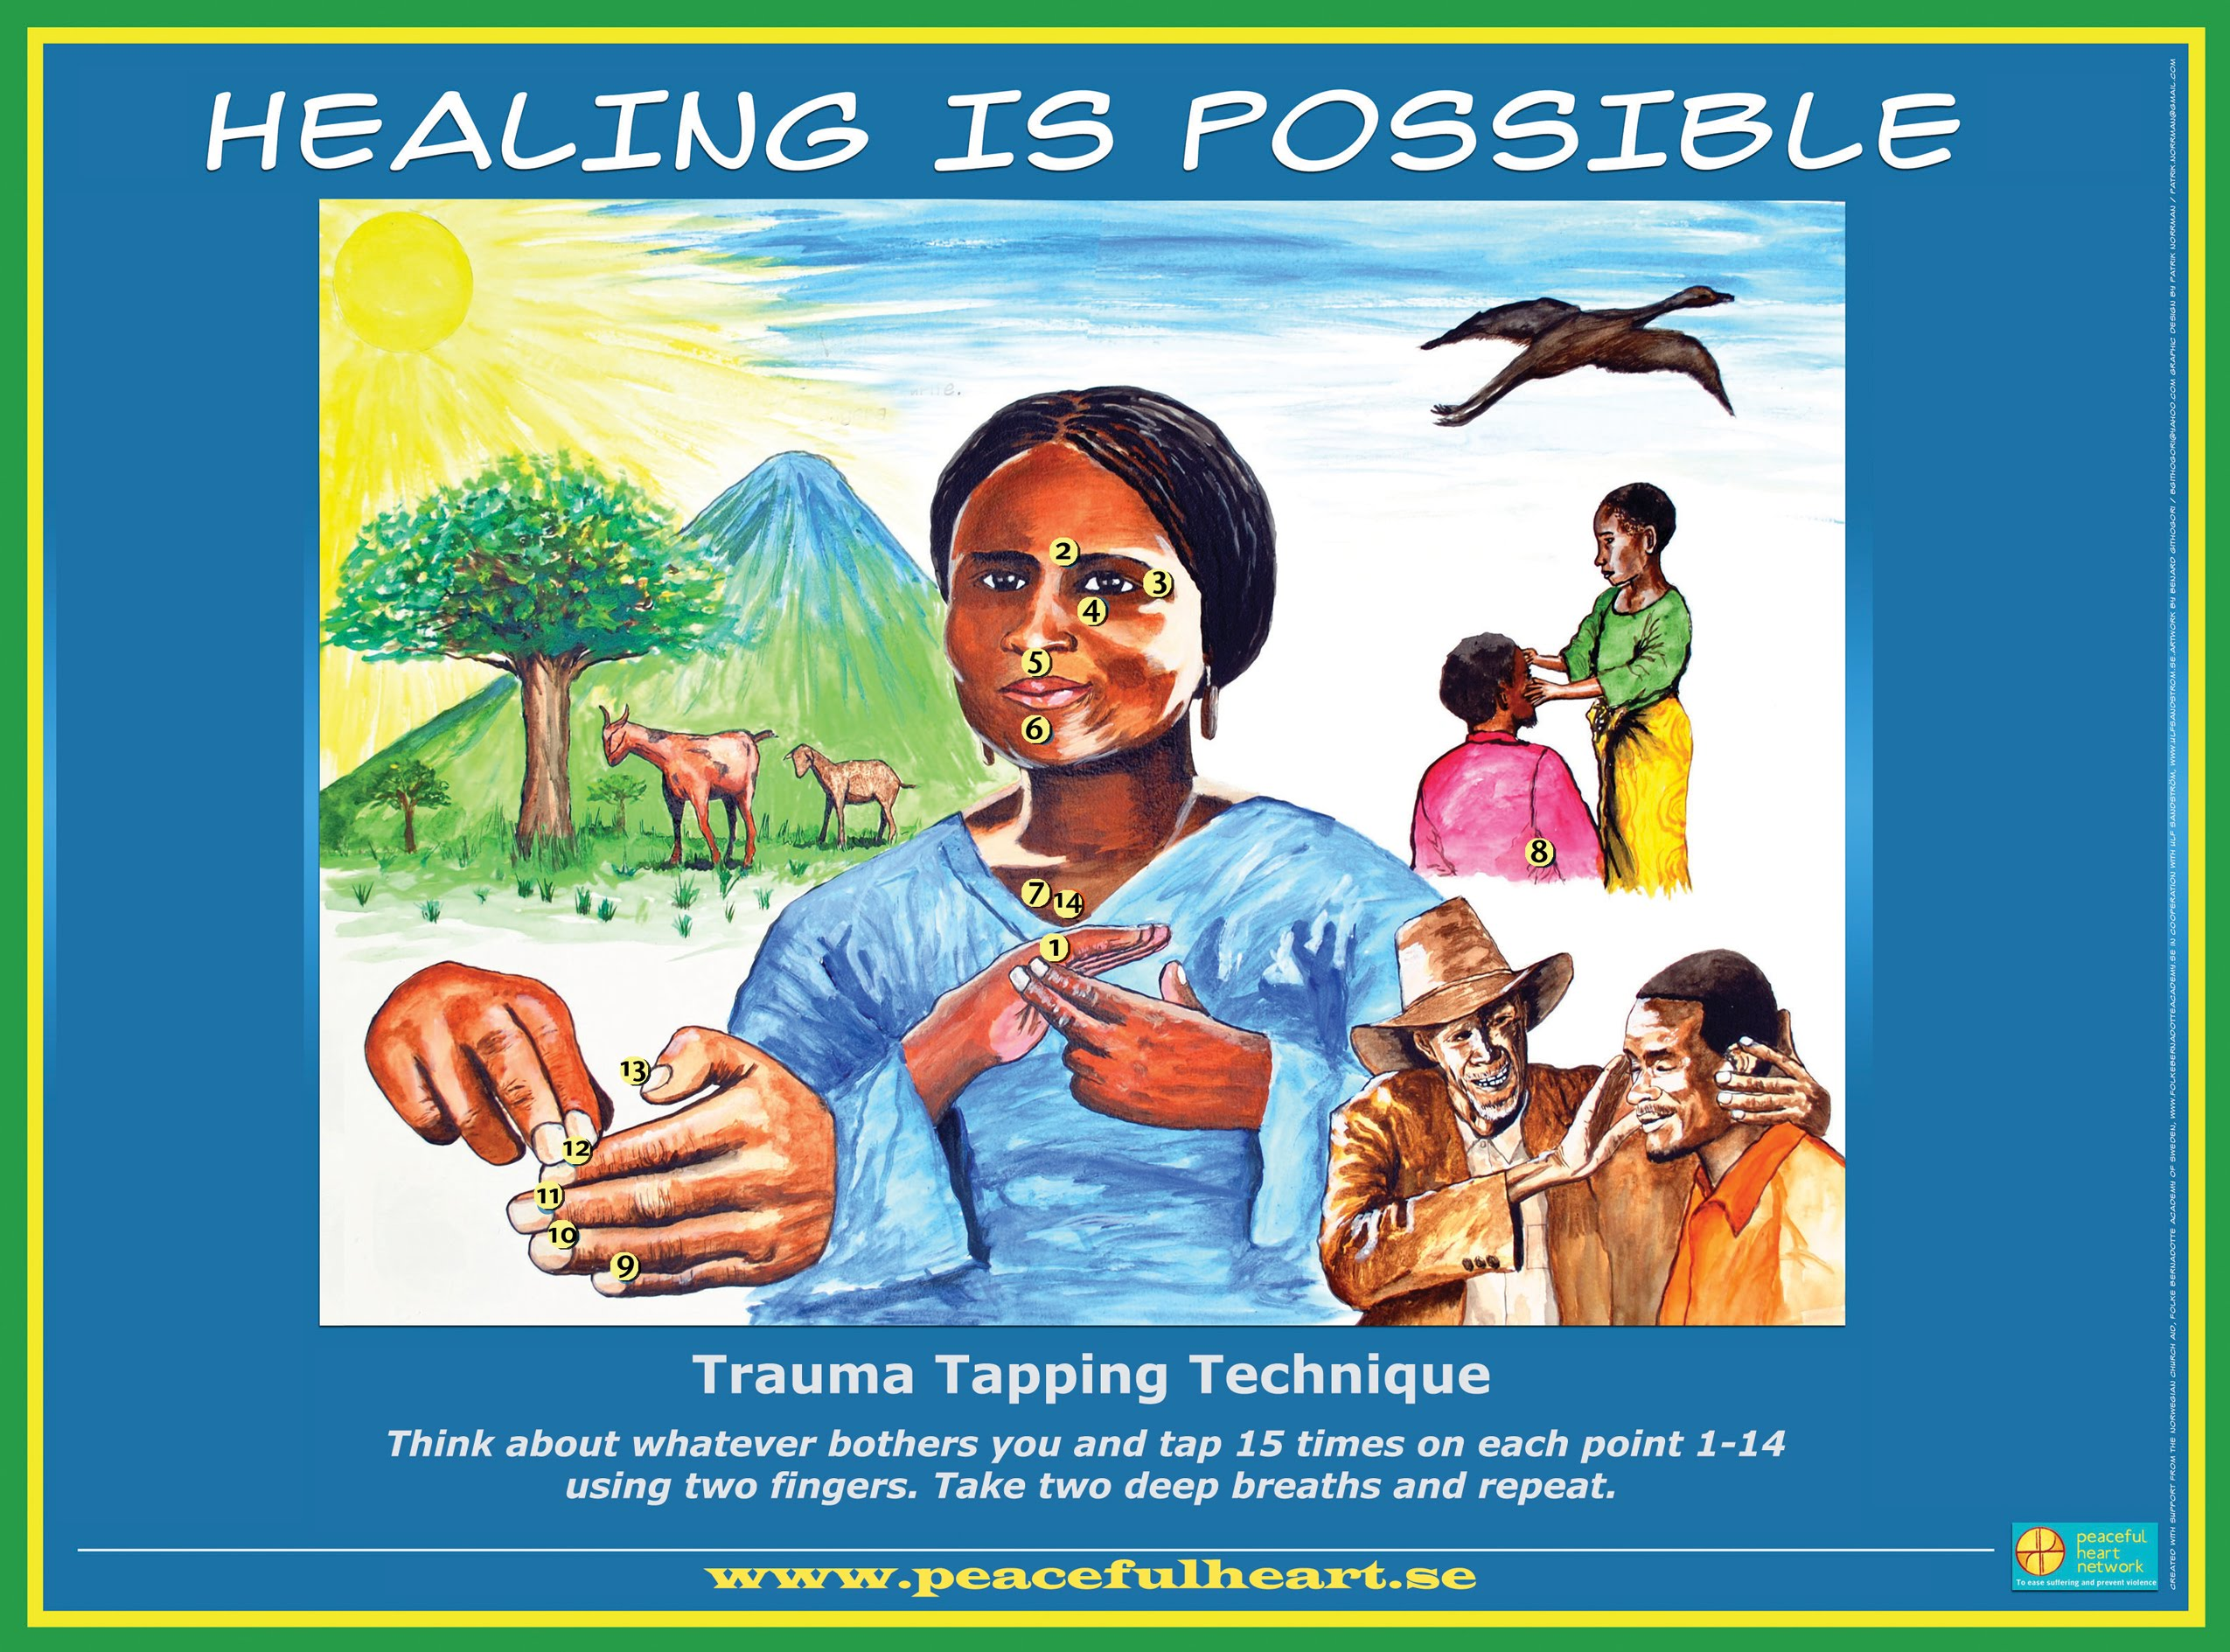 Trauma TappingTecnique instruction image - Peaceful Heart Network